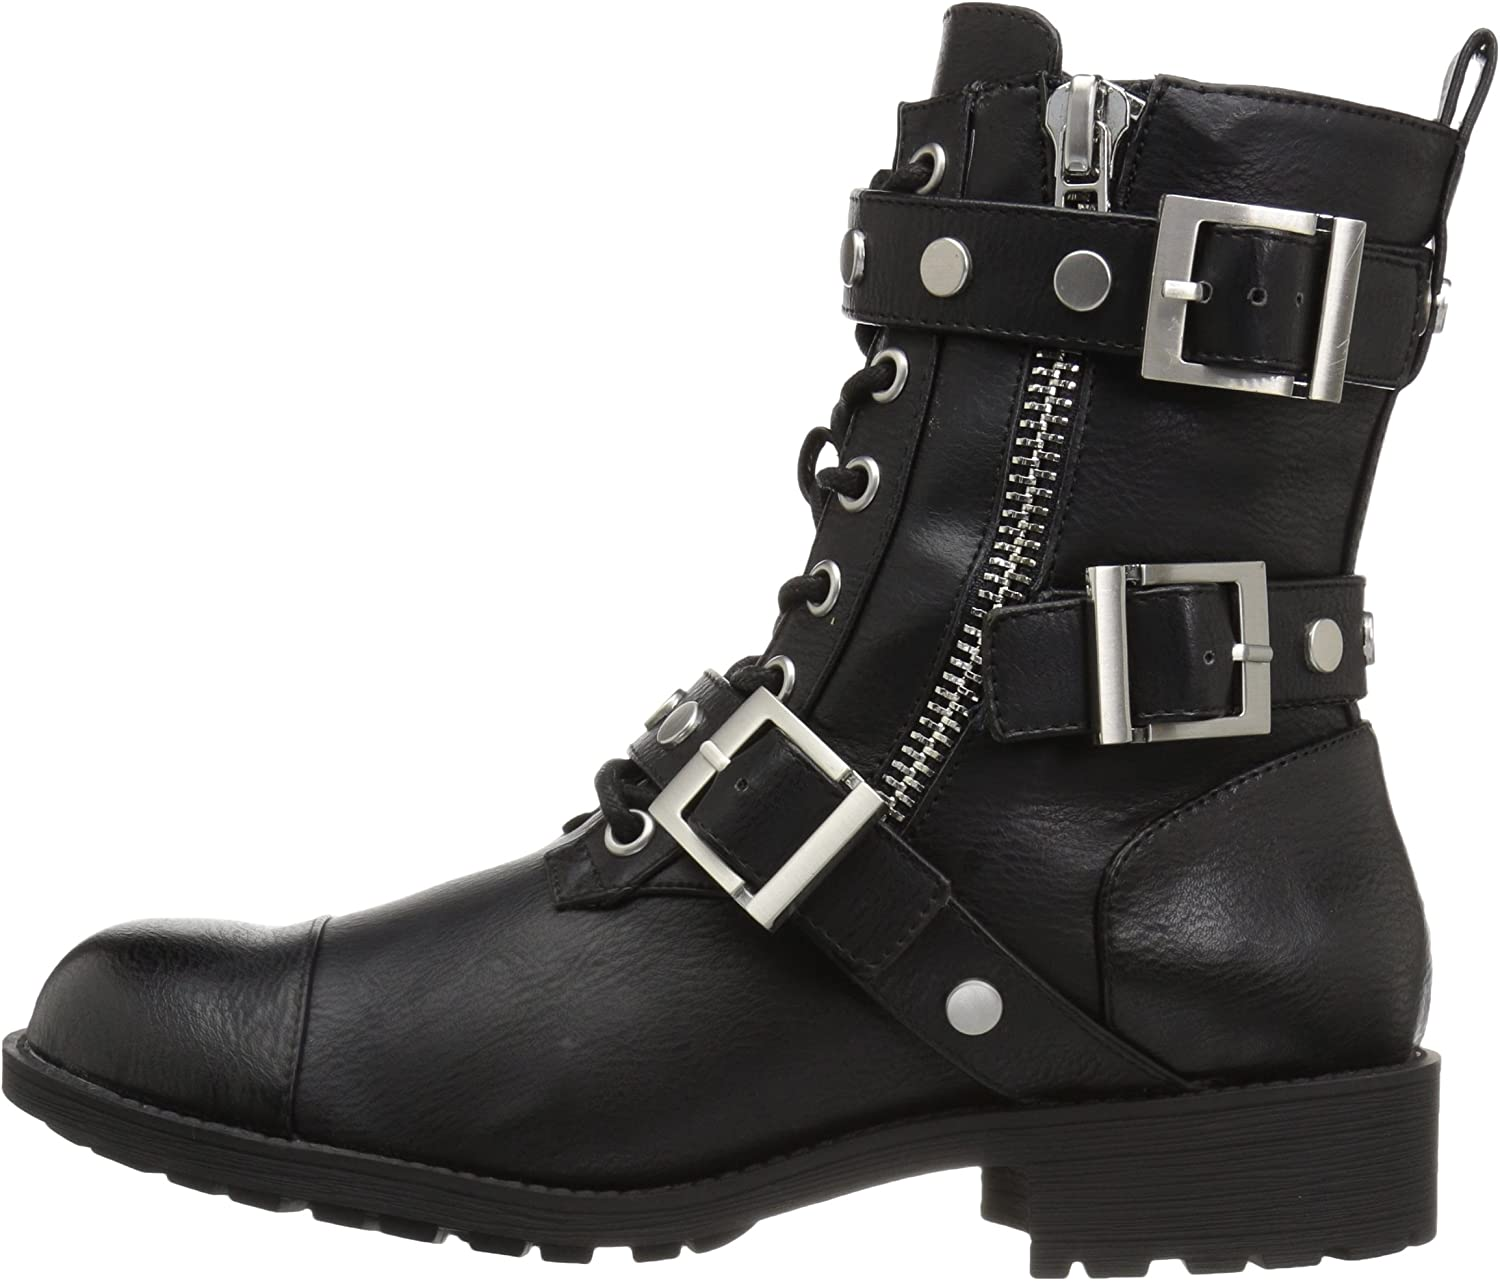 Style by Charles David Womens Caden Motorcycle Boot